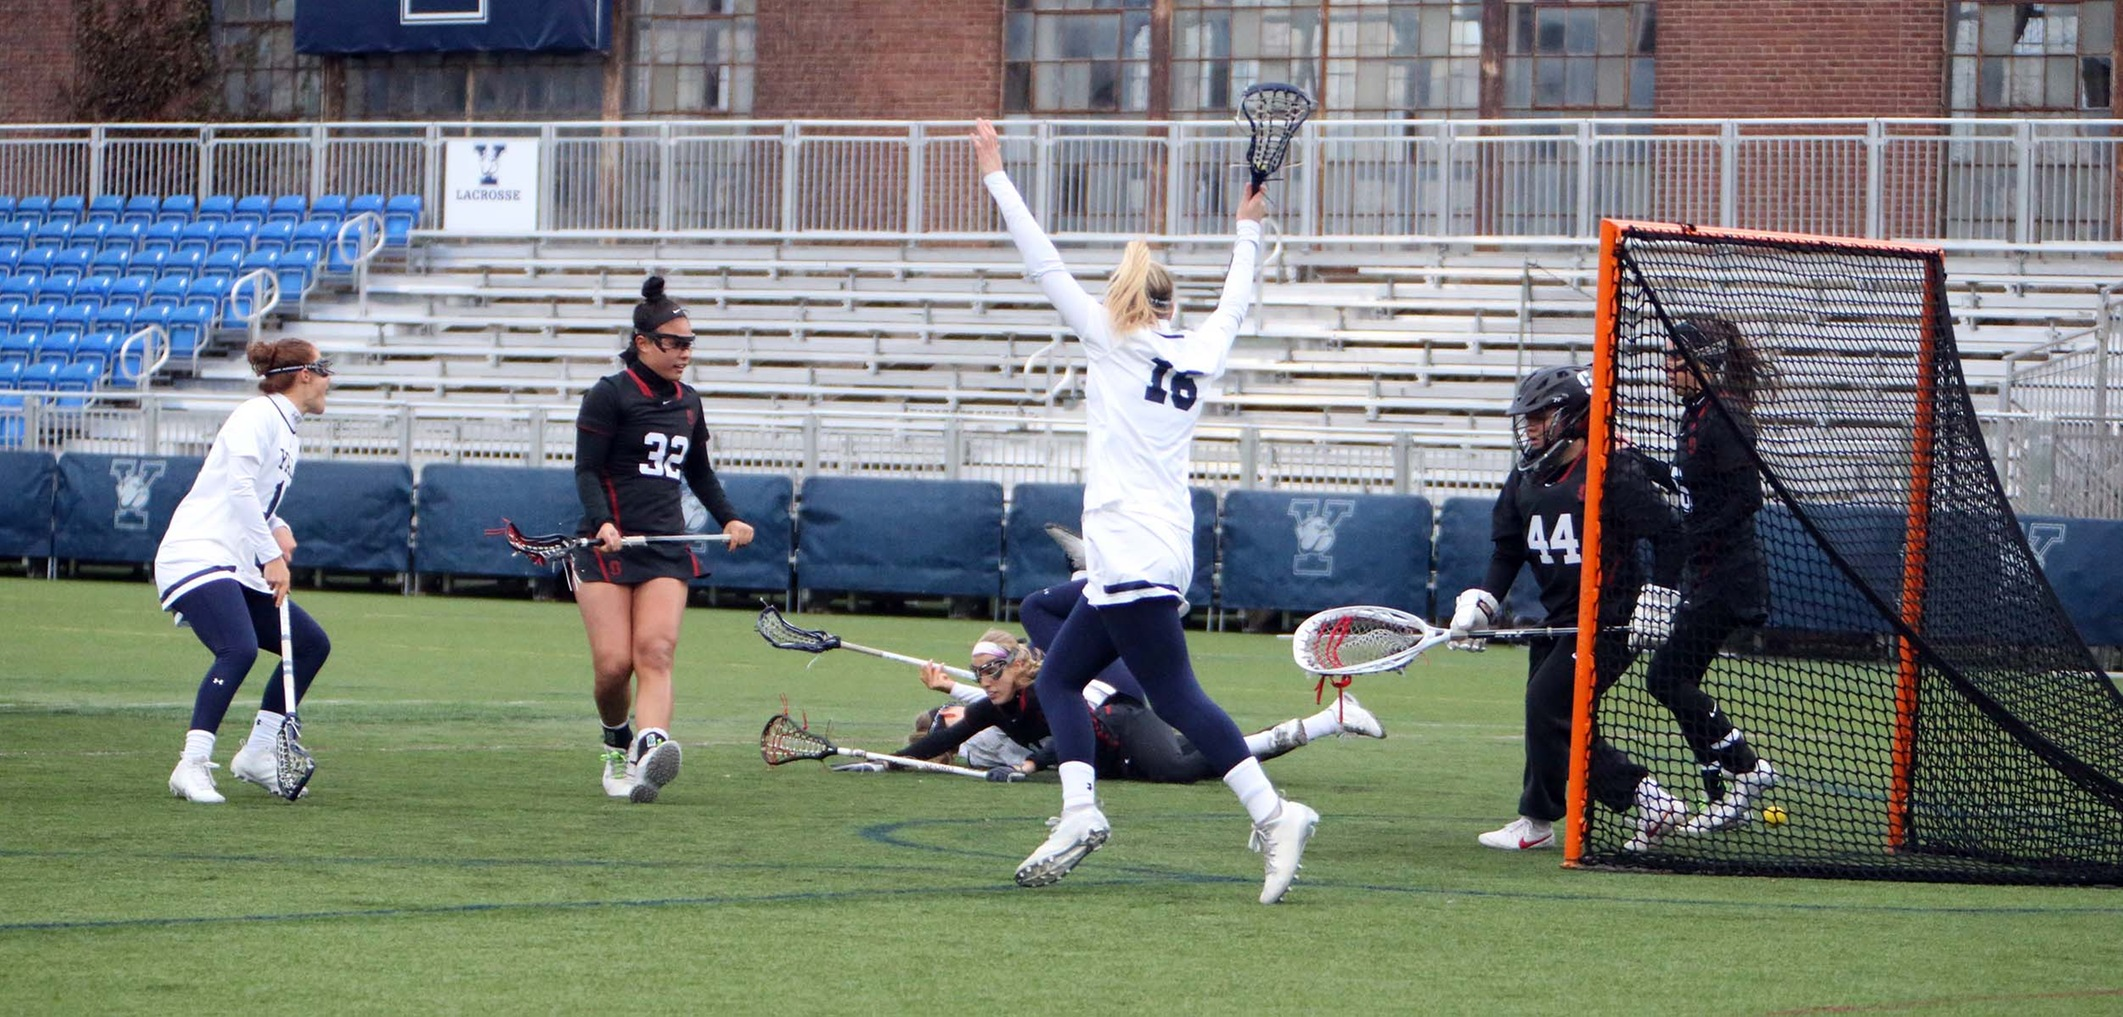 Yale celebrates a goal by Izzy Nixon. (photo by Sam Rubin '95, Yale Sports Publicity)